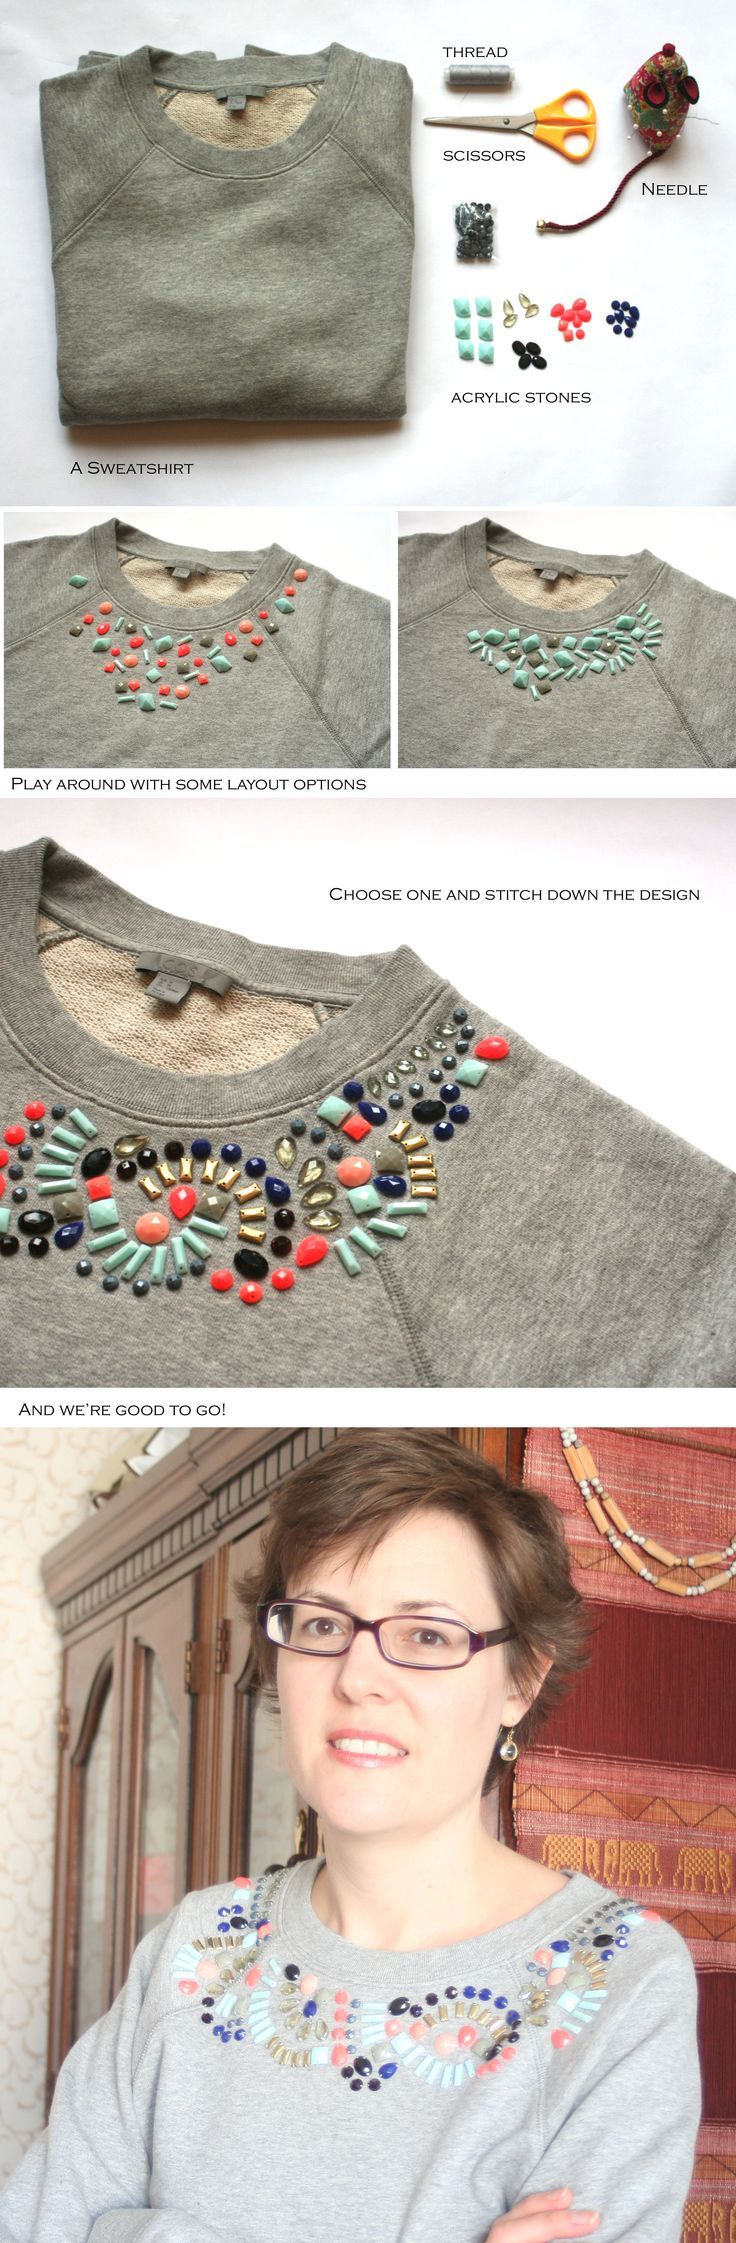 DIY embellished sweatshirt! Turn a plain sweatshirt into something like this! #refashionsweatshirt #diyembellishedsweatshirt #coolsweatshirtdiy